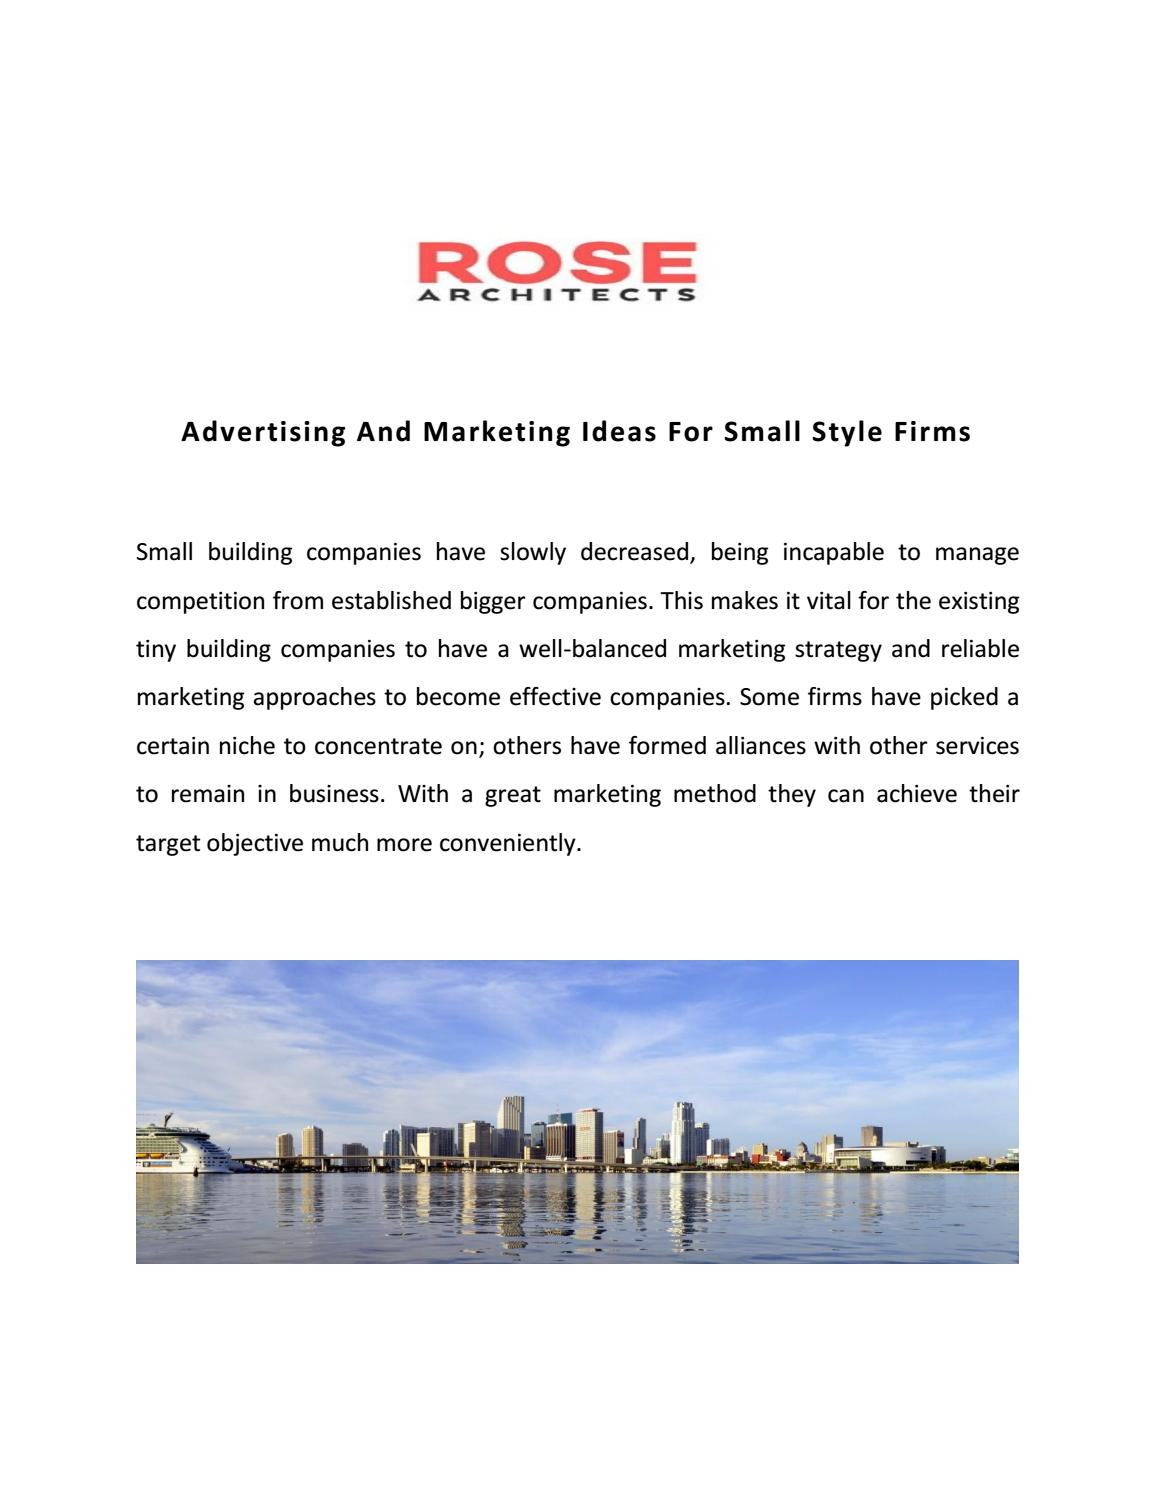 Architecture Firms In Fort Lauderdale Rose Architects By Rose Architects Issuu